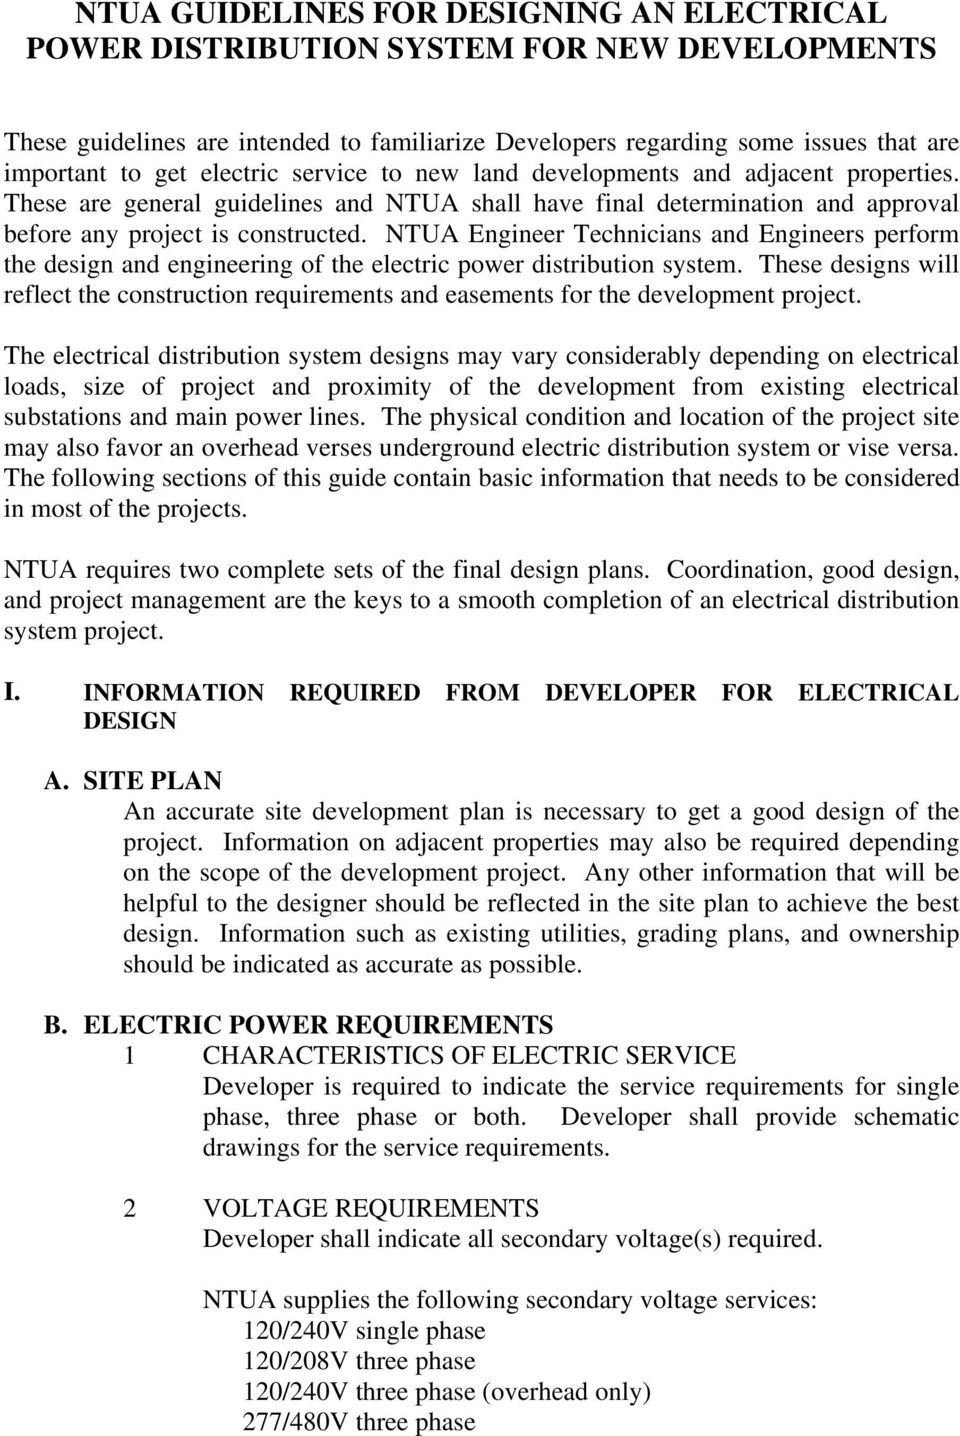 NTUA GUIDELINES FOR DESIGNING AN ELECTRICAL POWER